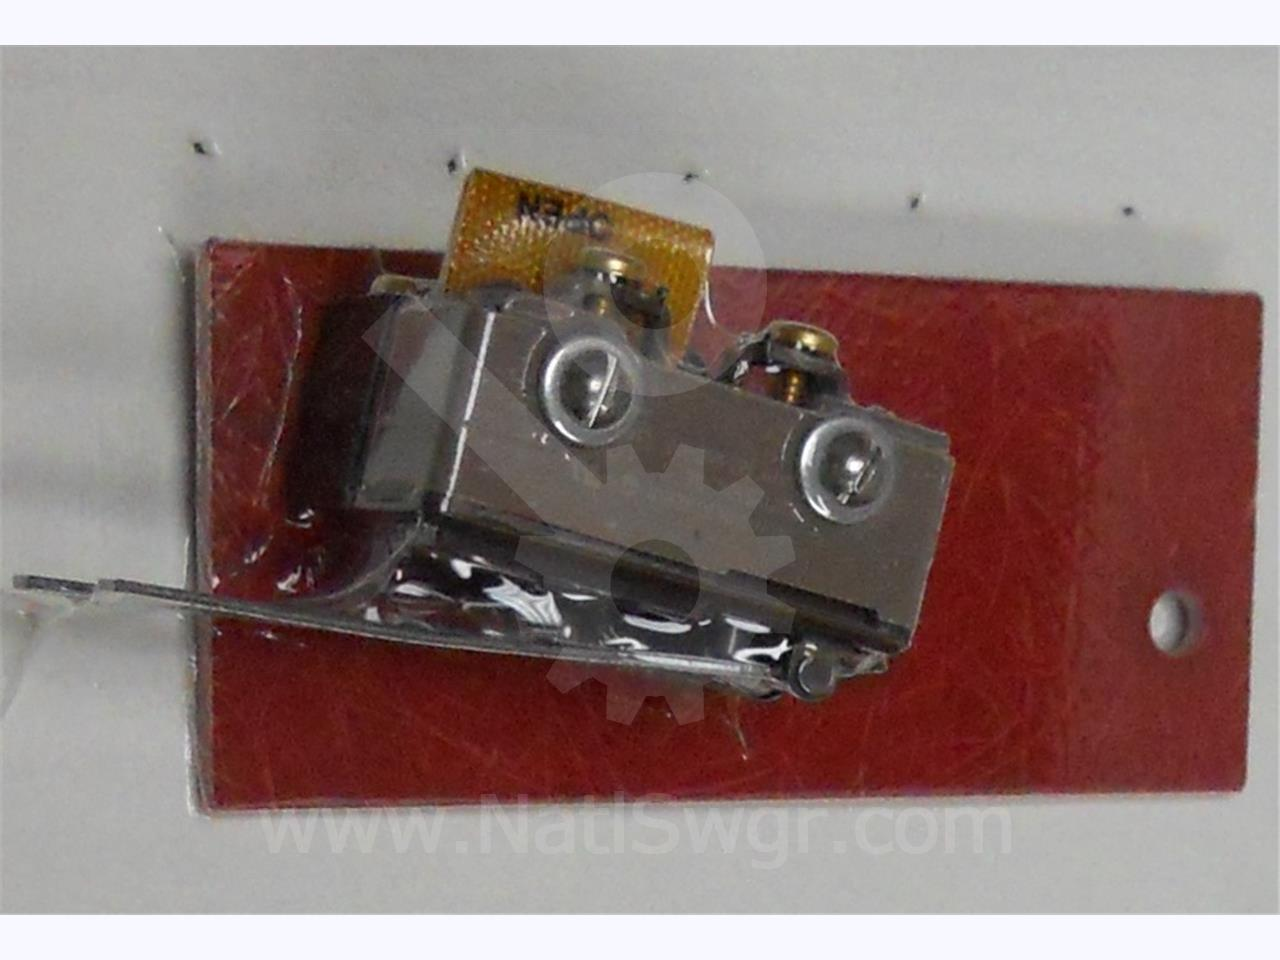 21696-93 Siemens / Allis Chalmers MOTOR CUT OFF SWITCH ASSEMBLY FOR GMI